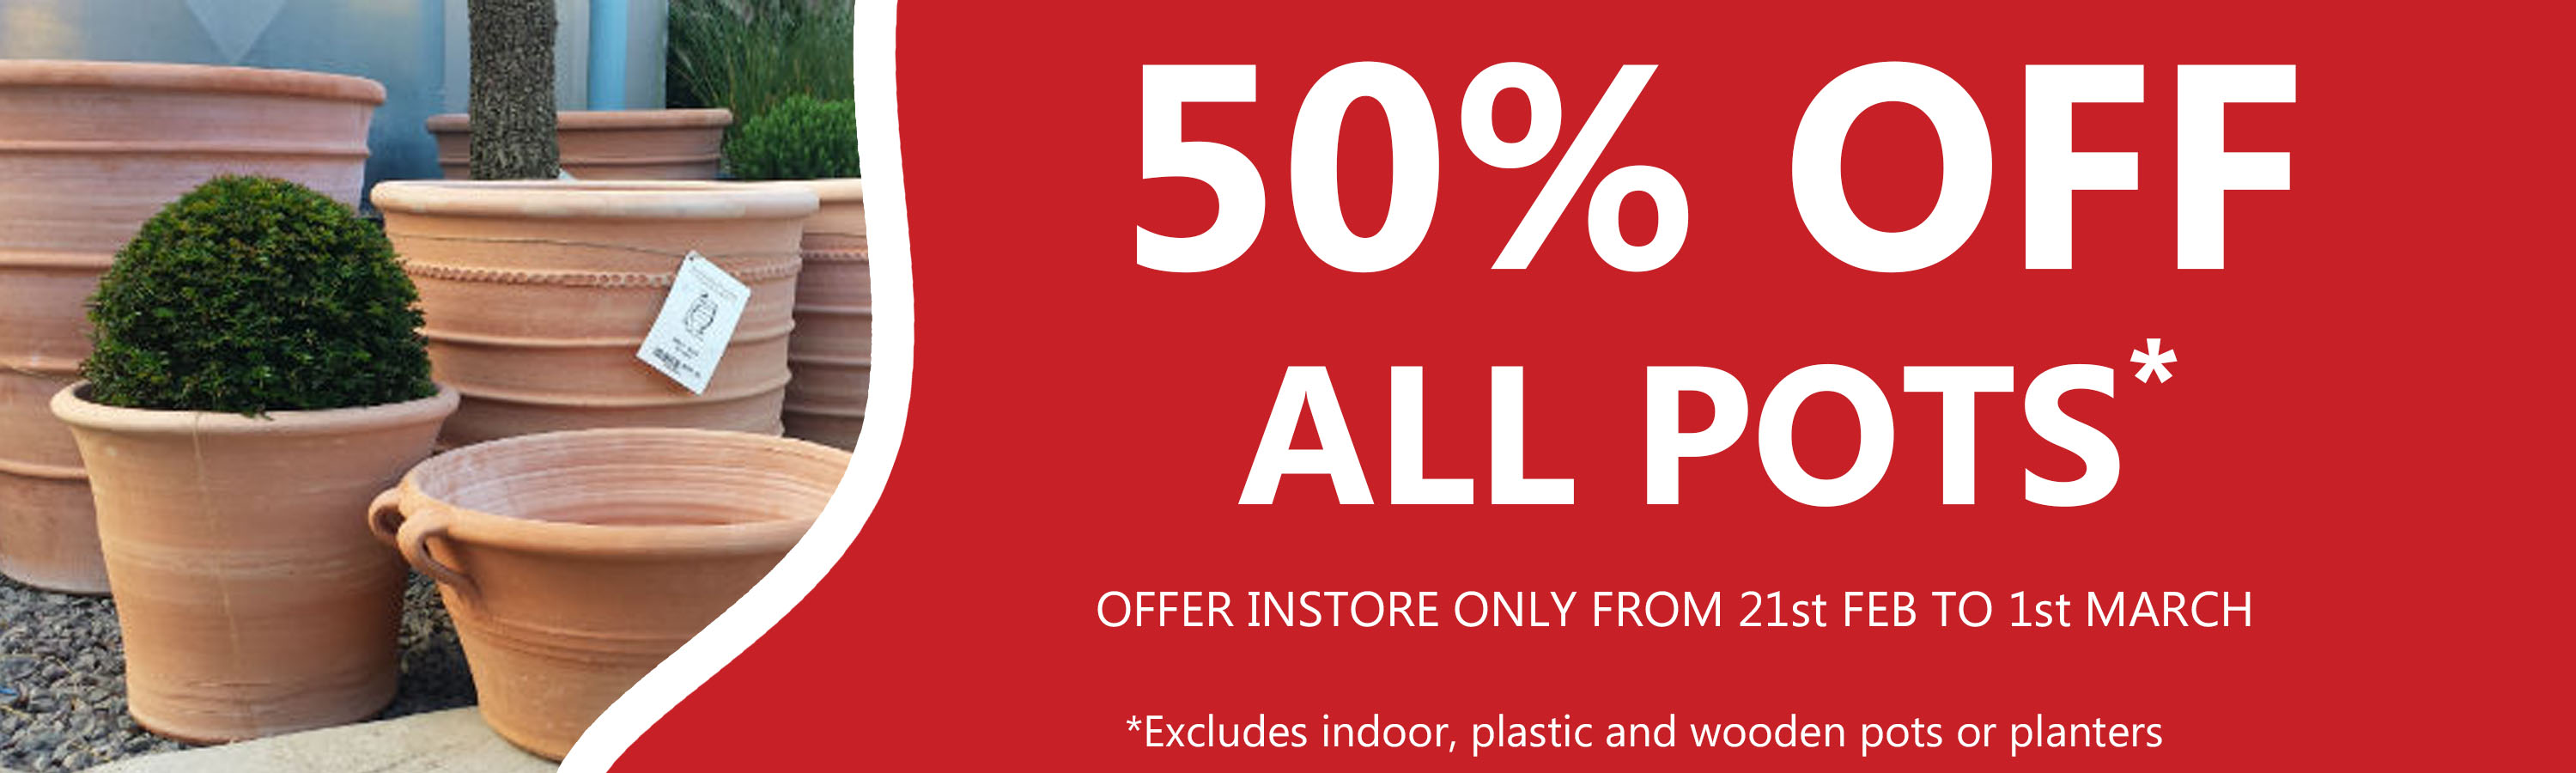 50% off all pots in store